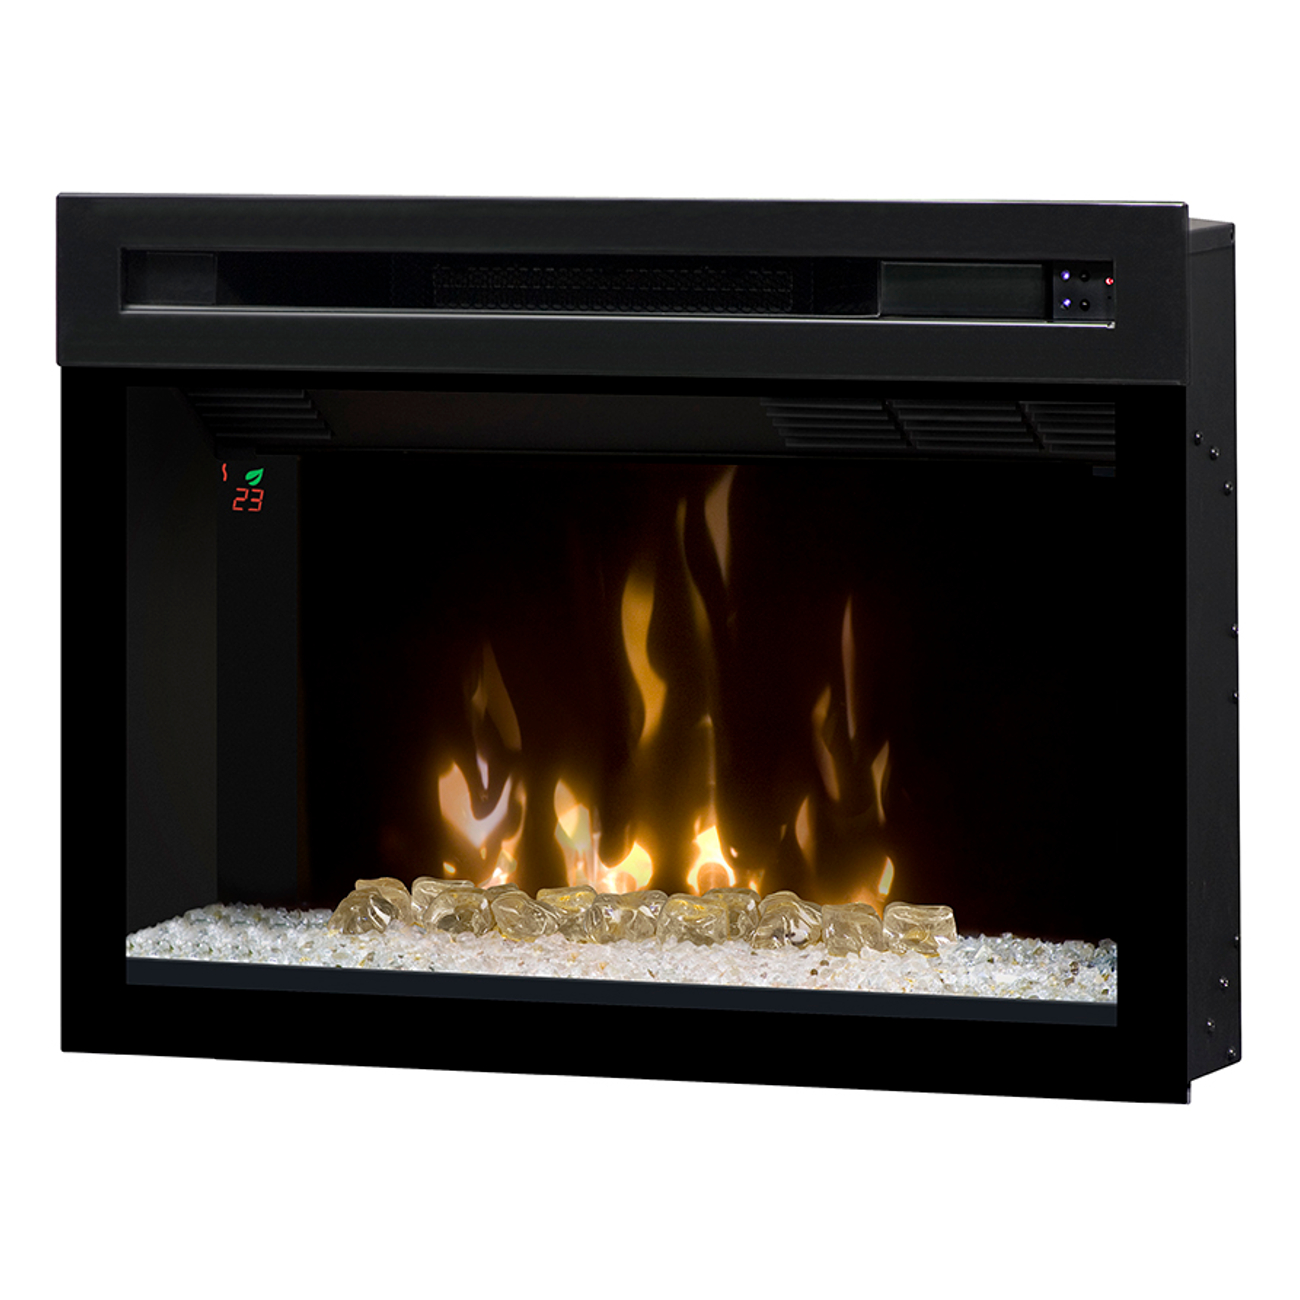 dimplex-25-inch-multifire-electric-fireplace-insert-PF2325HG